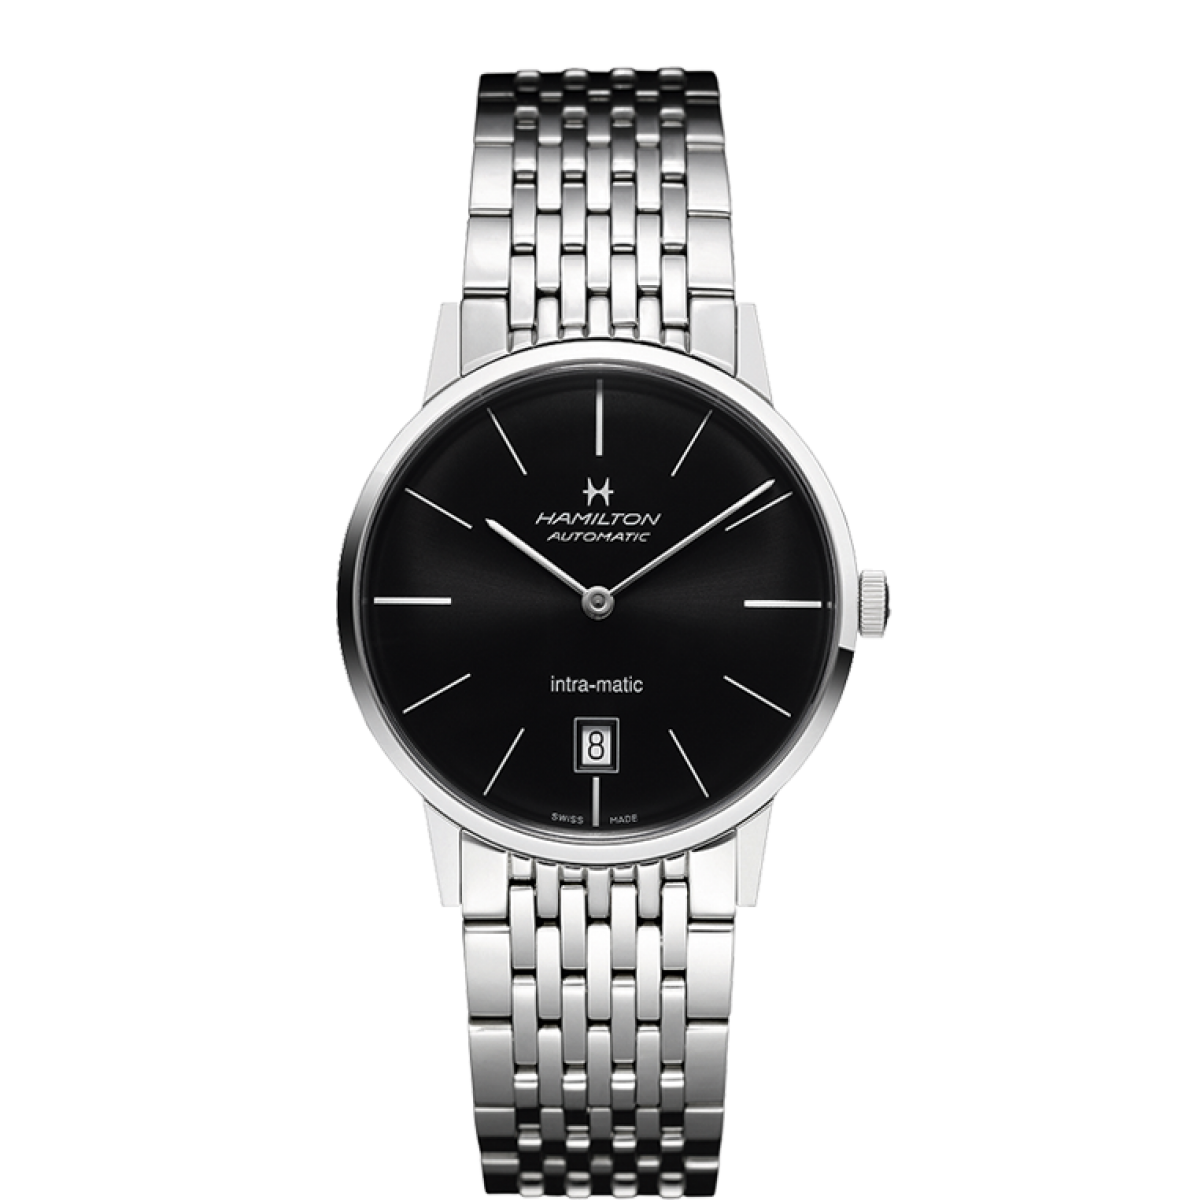 New Hamilton Intra-Matic